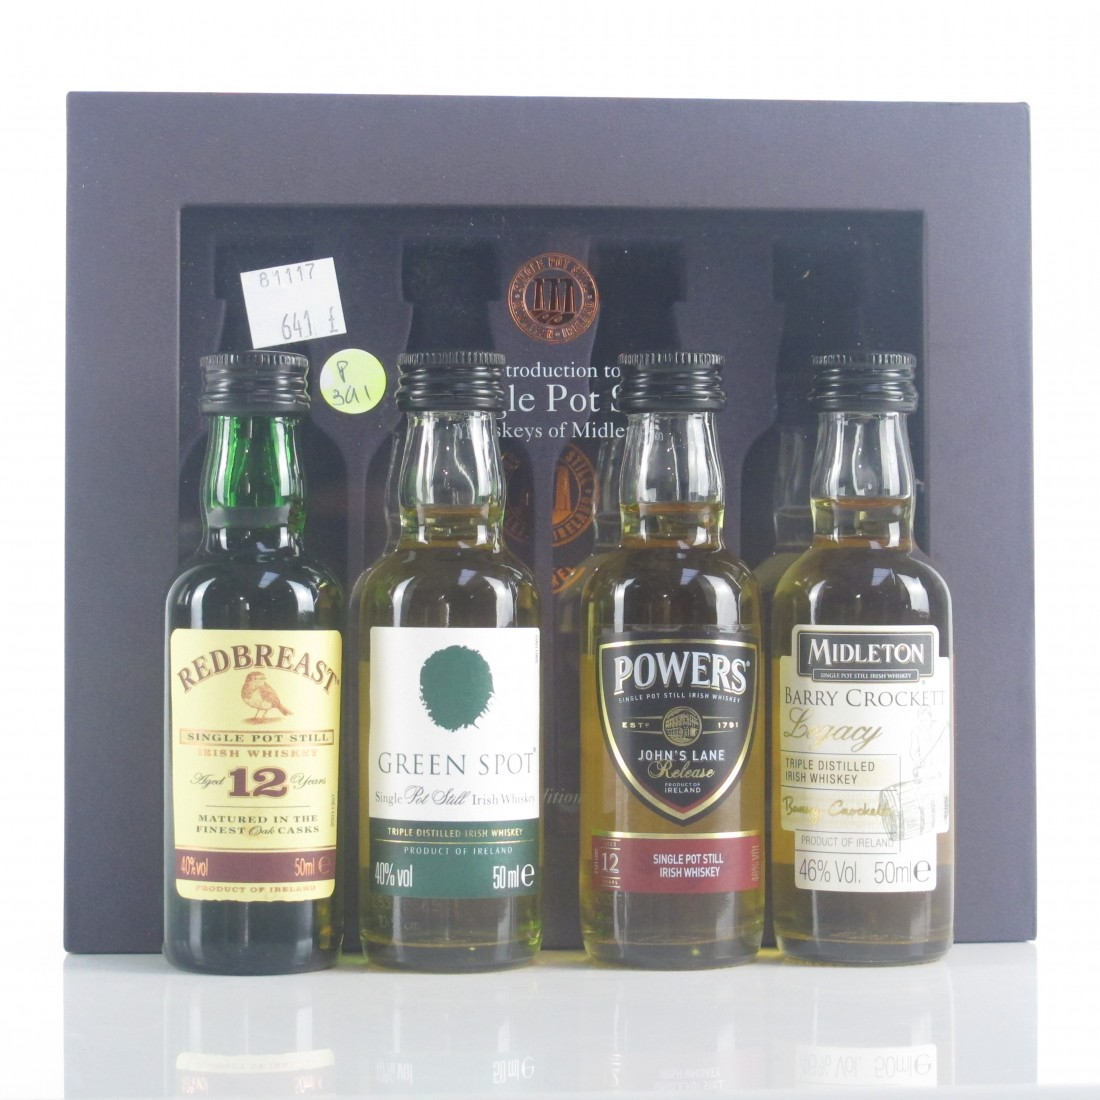 Midleton 'An Introduction to Single Pot Still Whiskeys of' Miniatures 4 x 5cl